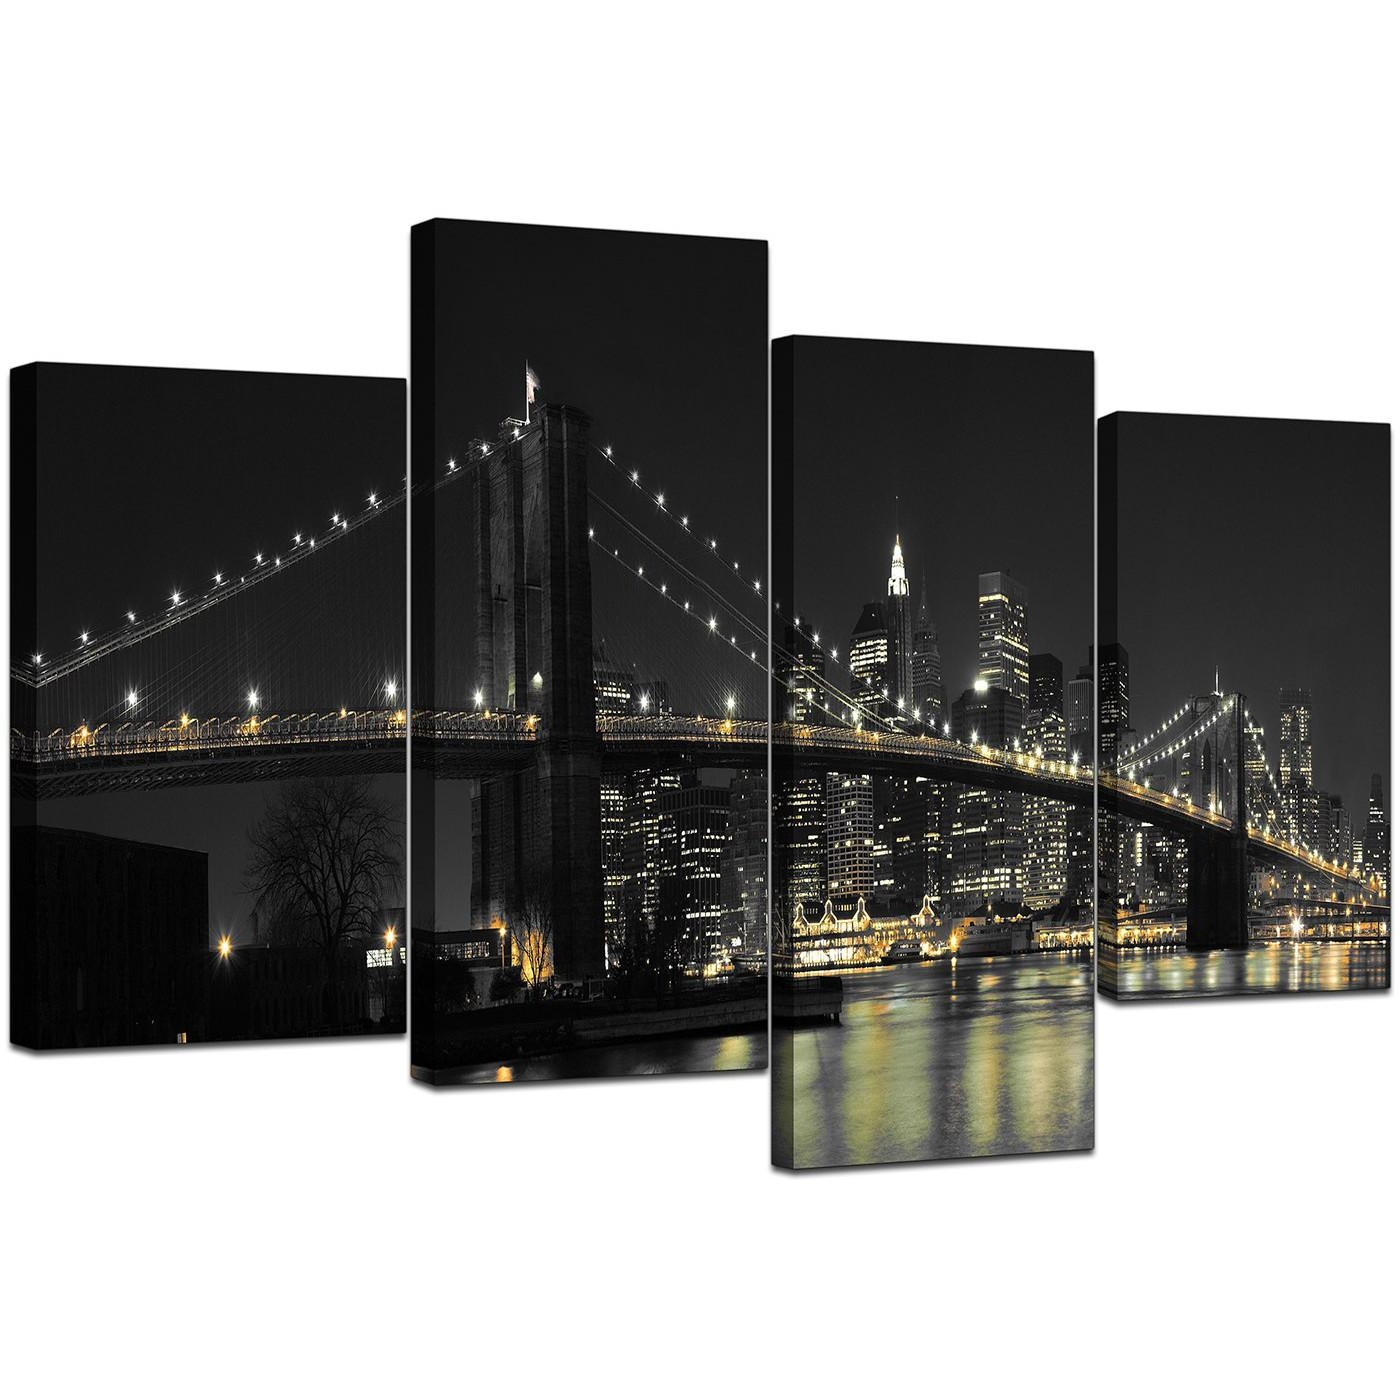 Canvas Wall Art Of New York For Your Office – 4 Part In New York Skyline Canvas Black And White Wall Art (View 12 of 20)